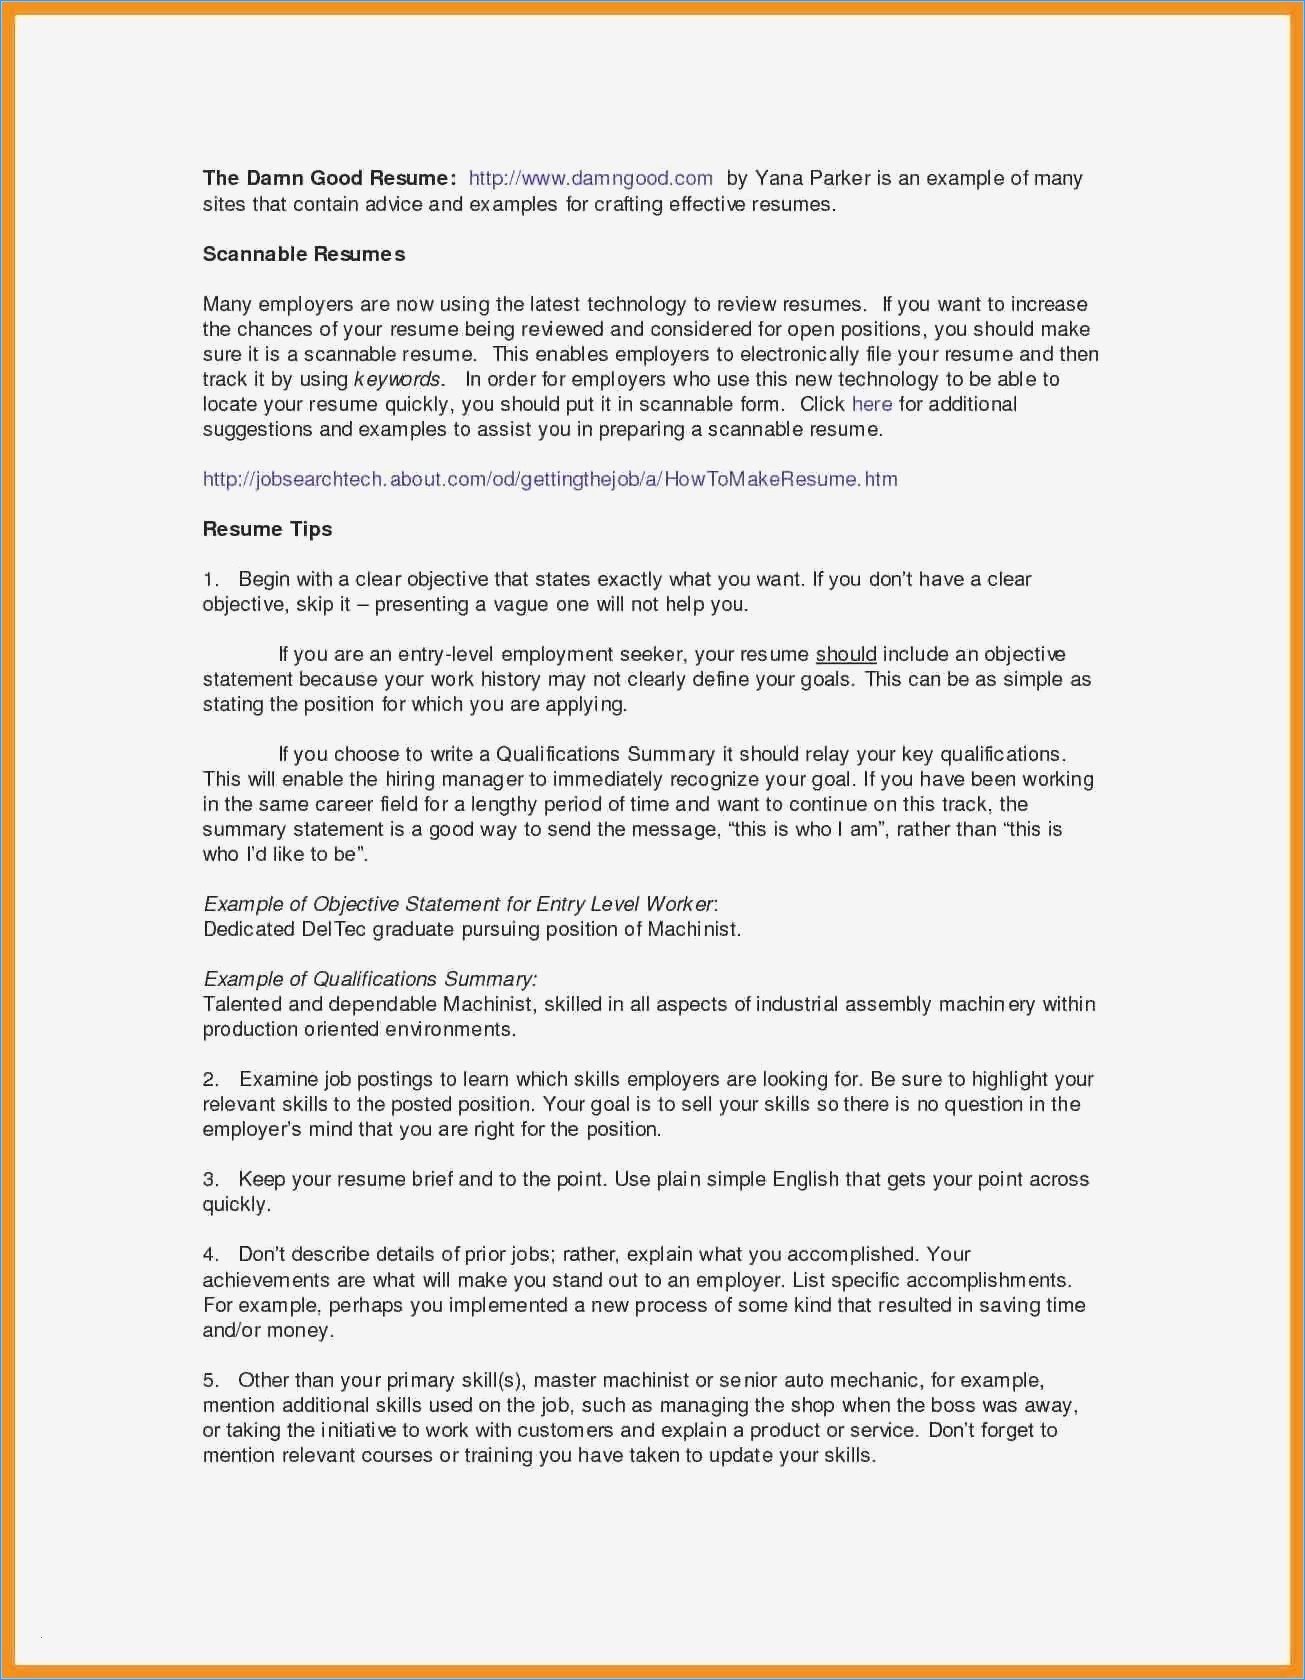 Good Objective For Resume Examples Of Objectives In Resumes New Career Objectives For Resumes Awesome How Write A Resume For A Job Of Examples Of Objectives In Resumes good objective for resume wikiresume.com